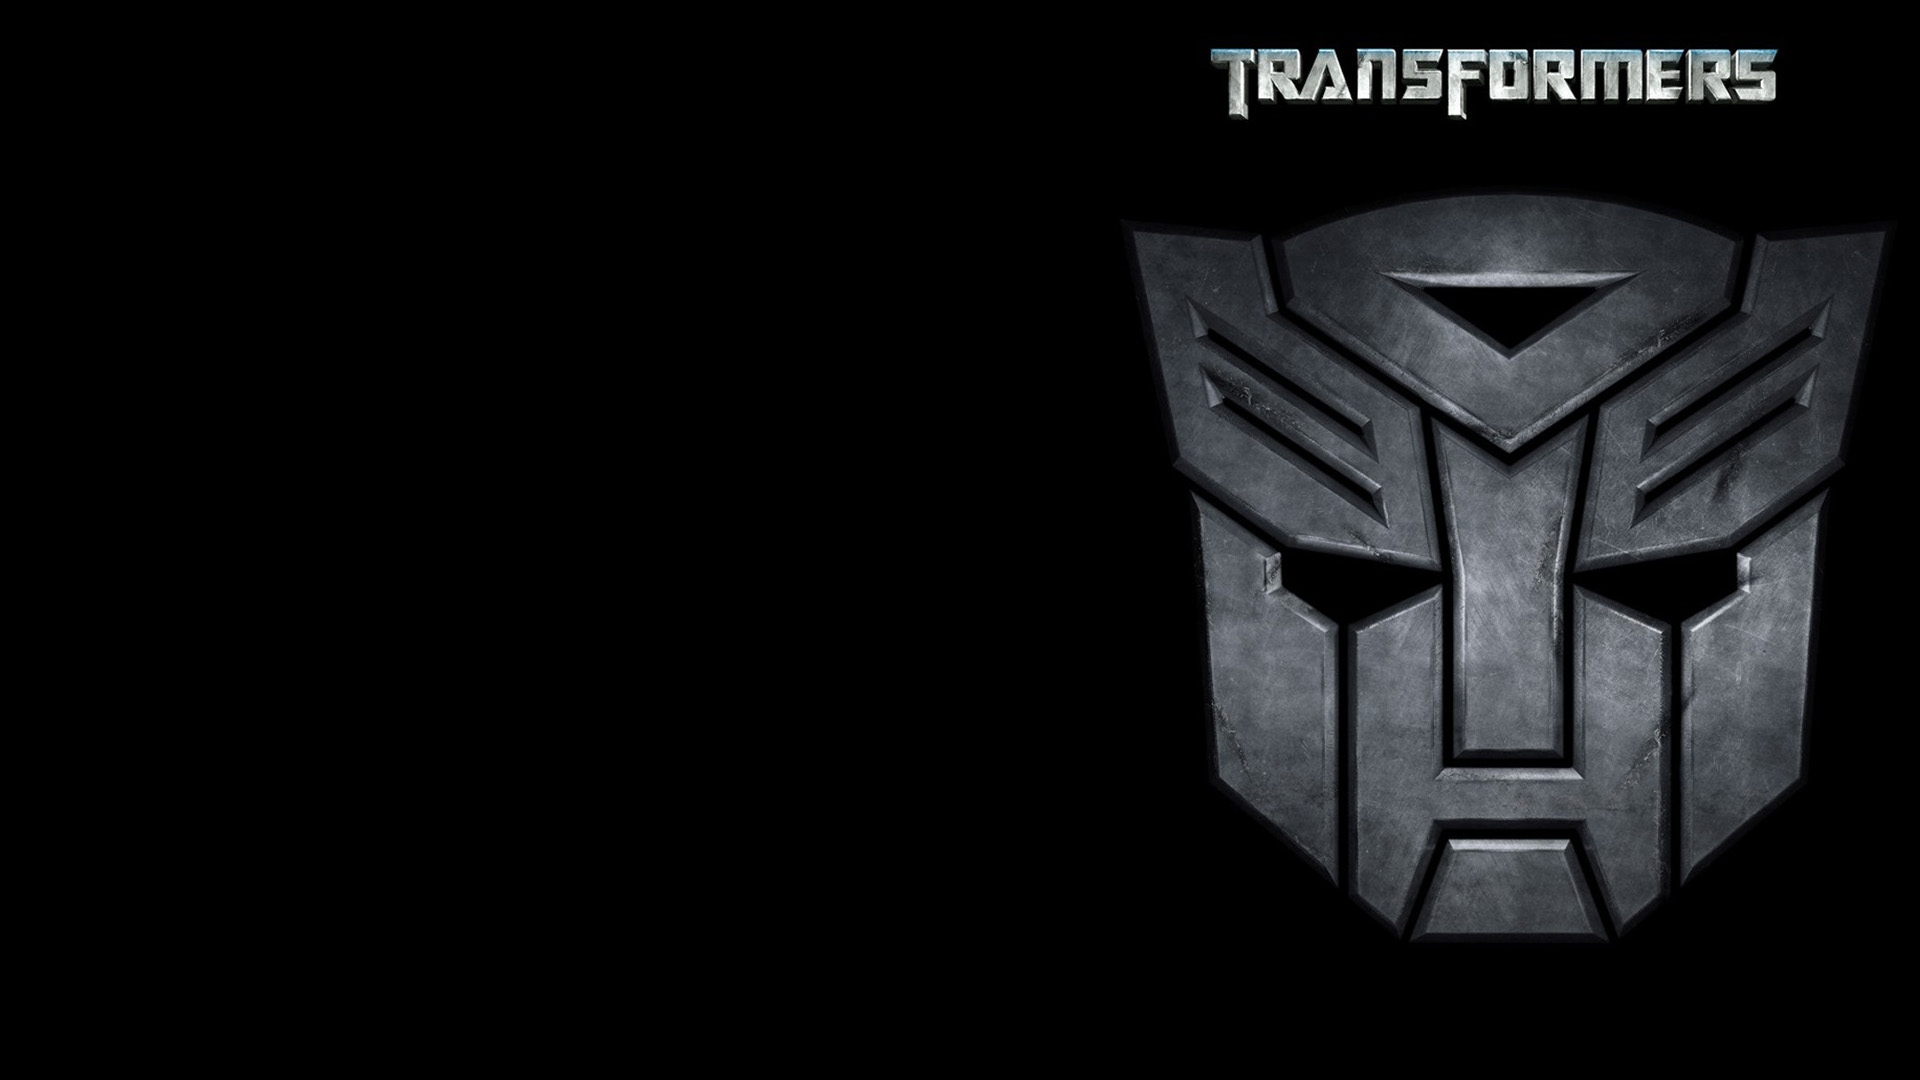 45 hd transformer wallpapers/backgrounds for free download.